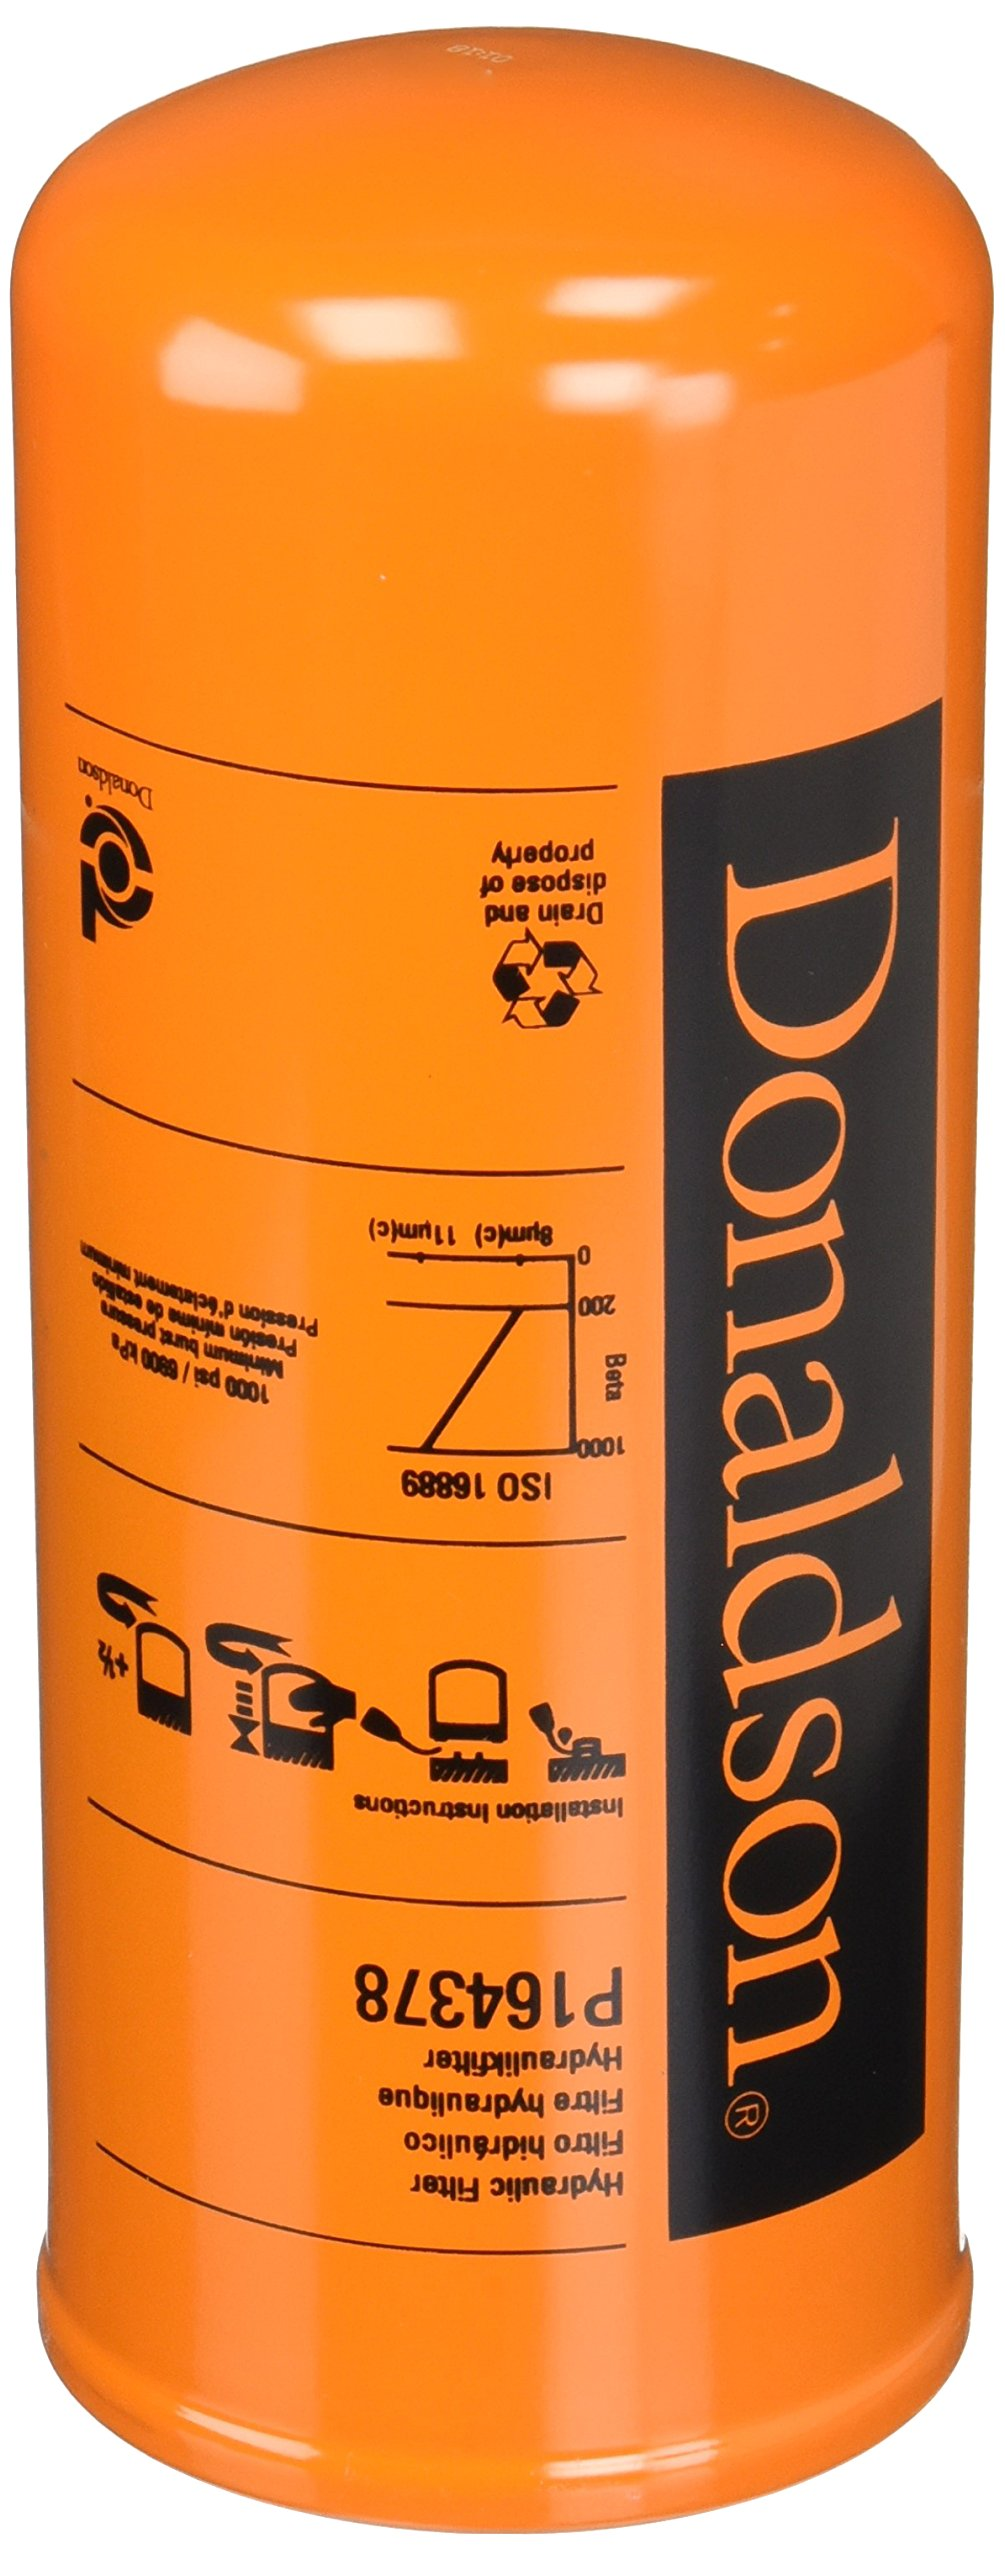 Donaldson P164378 Hydraulic Filter, Spin-on, Duramax by Donaldson